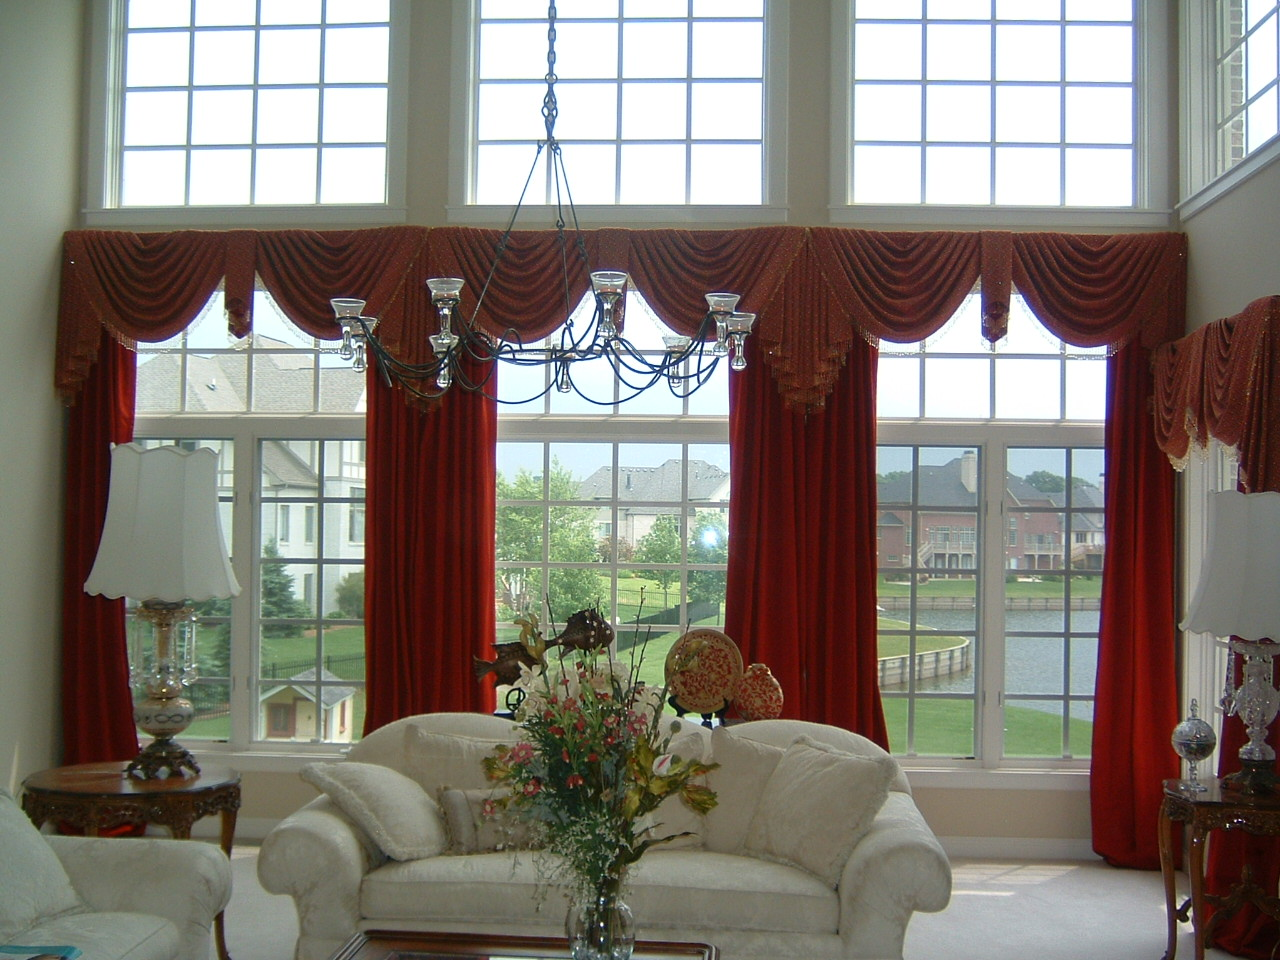 Lively Curtain Designs For Windows With Astounding Color Scheme : Design Of Curtains